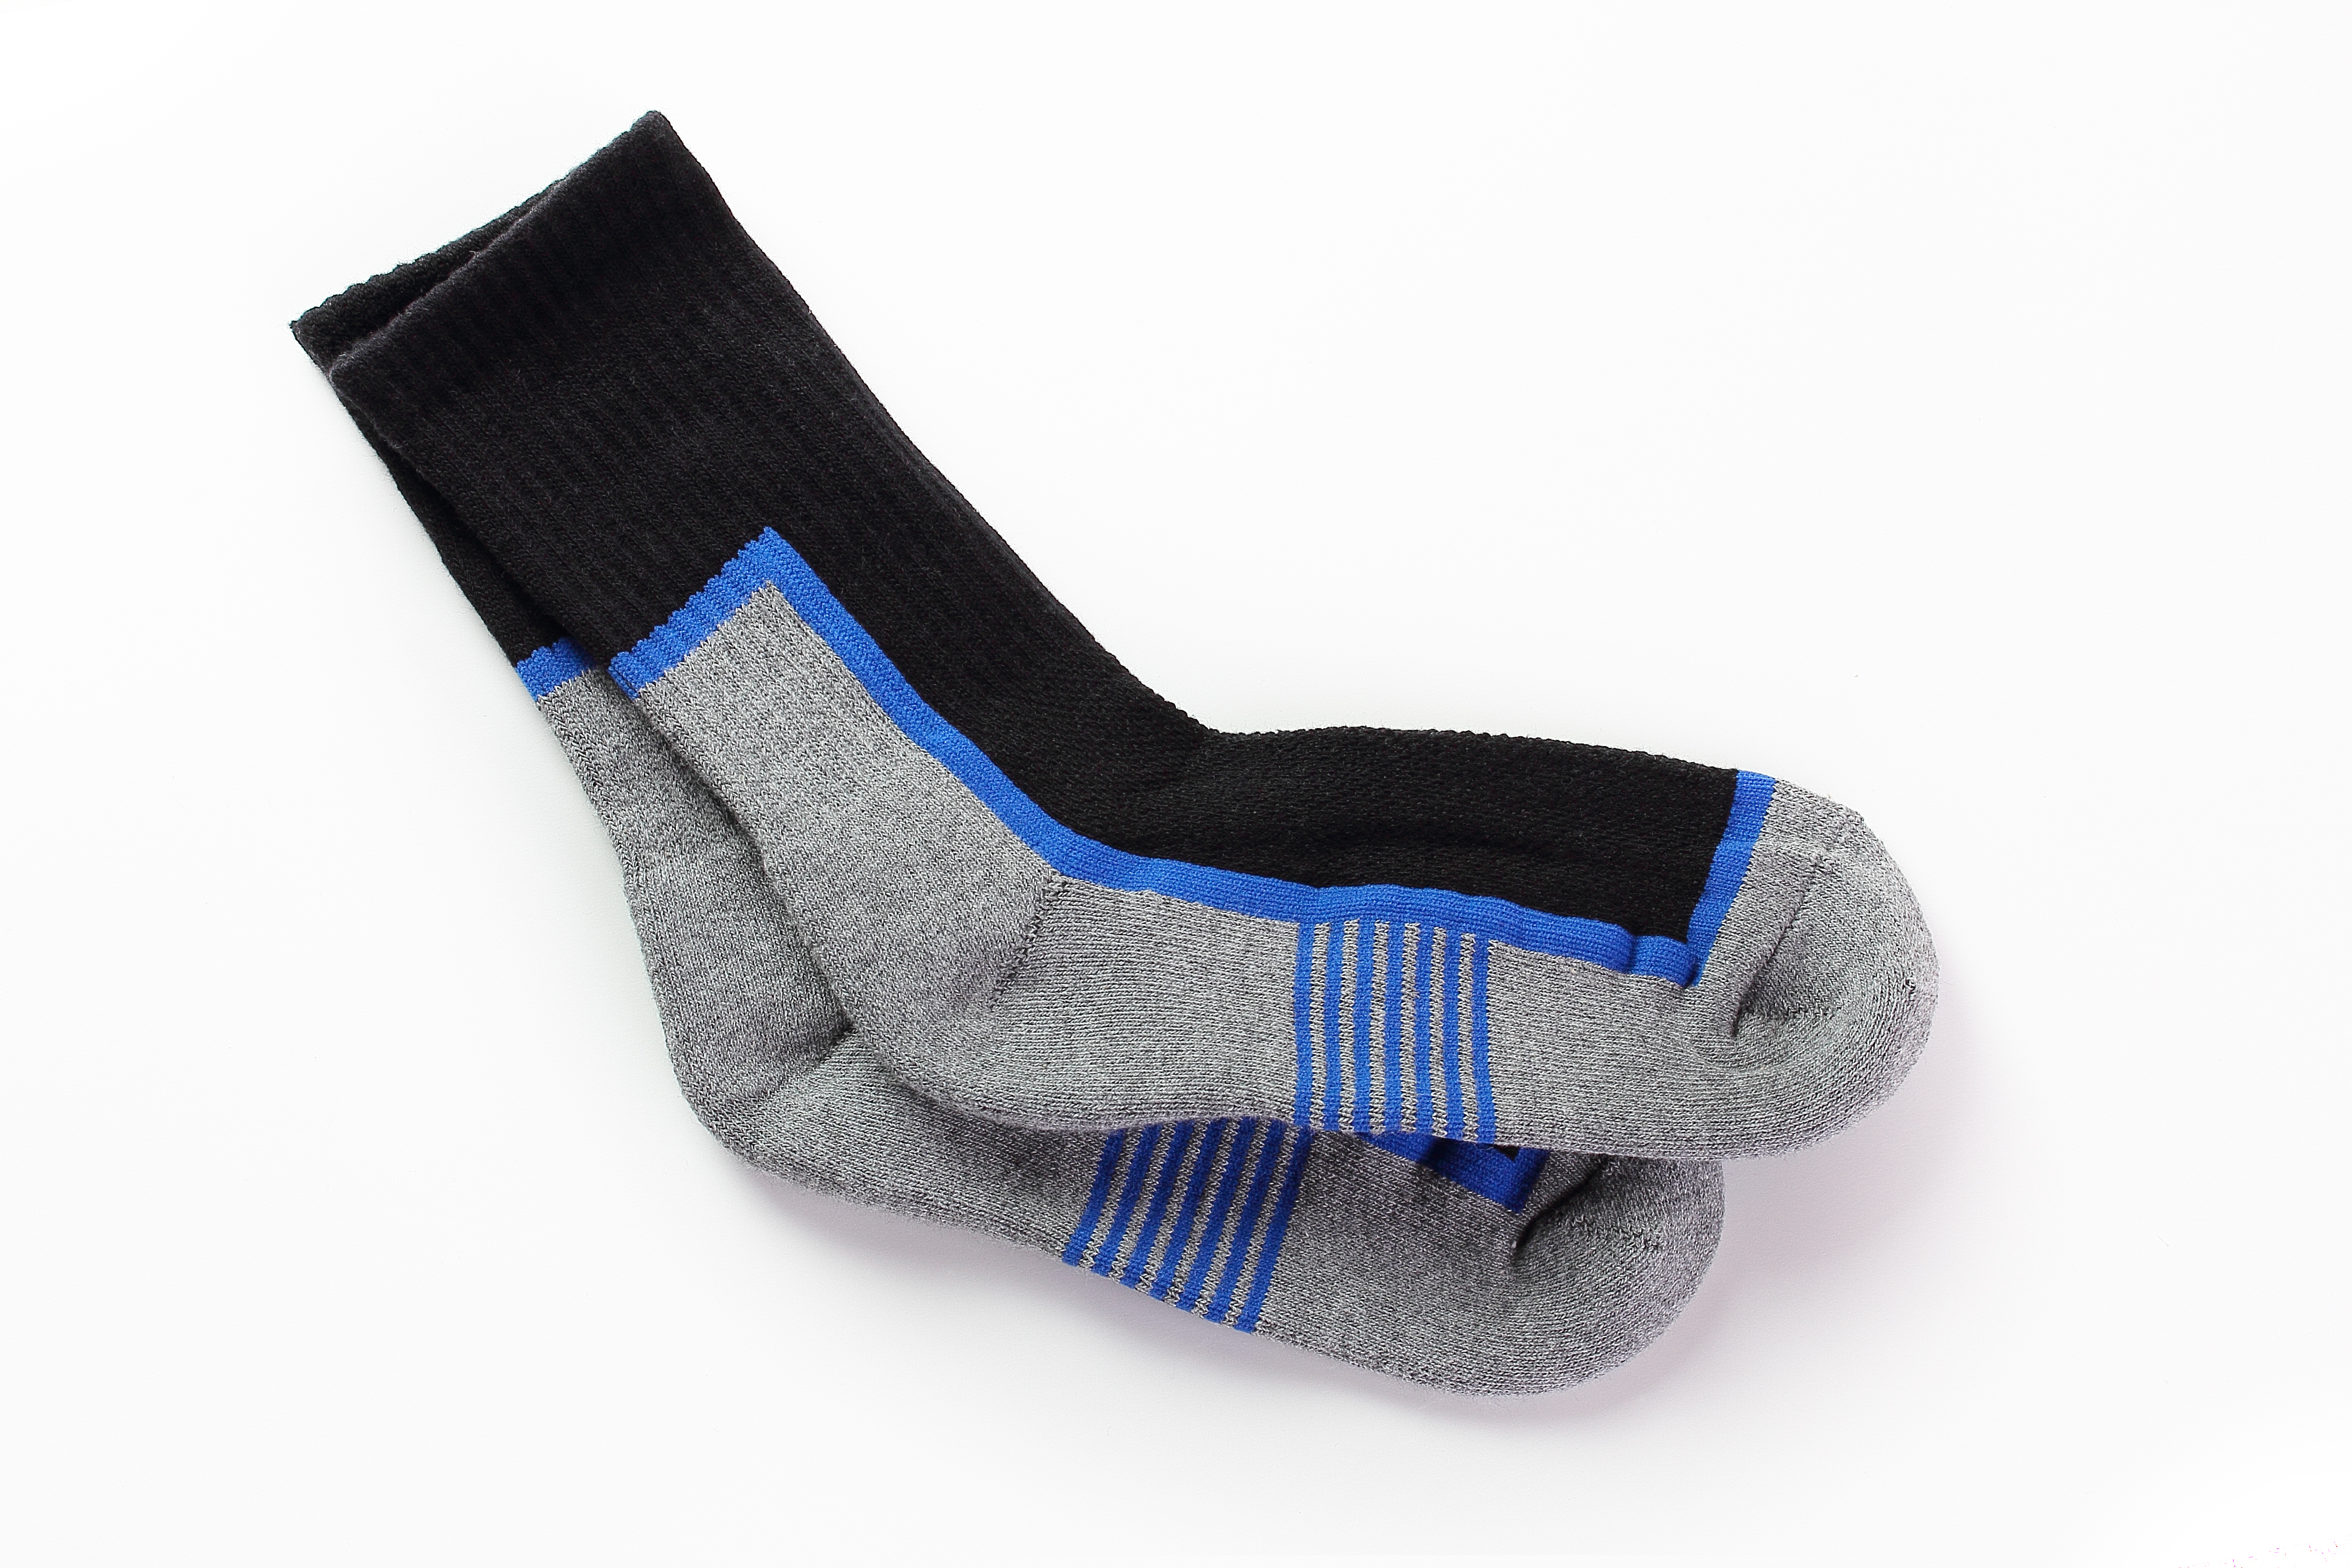 KS11 Specialized sports socks (1)